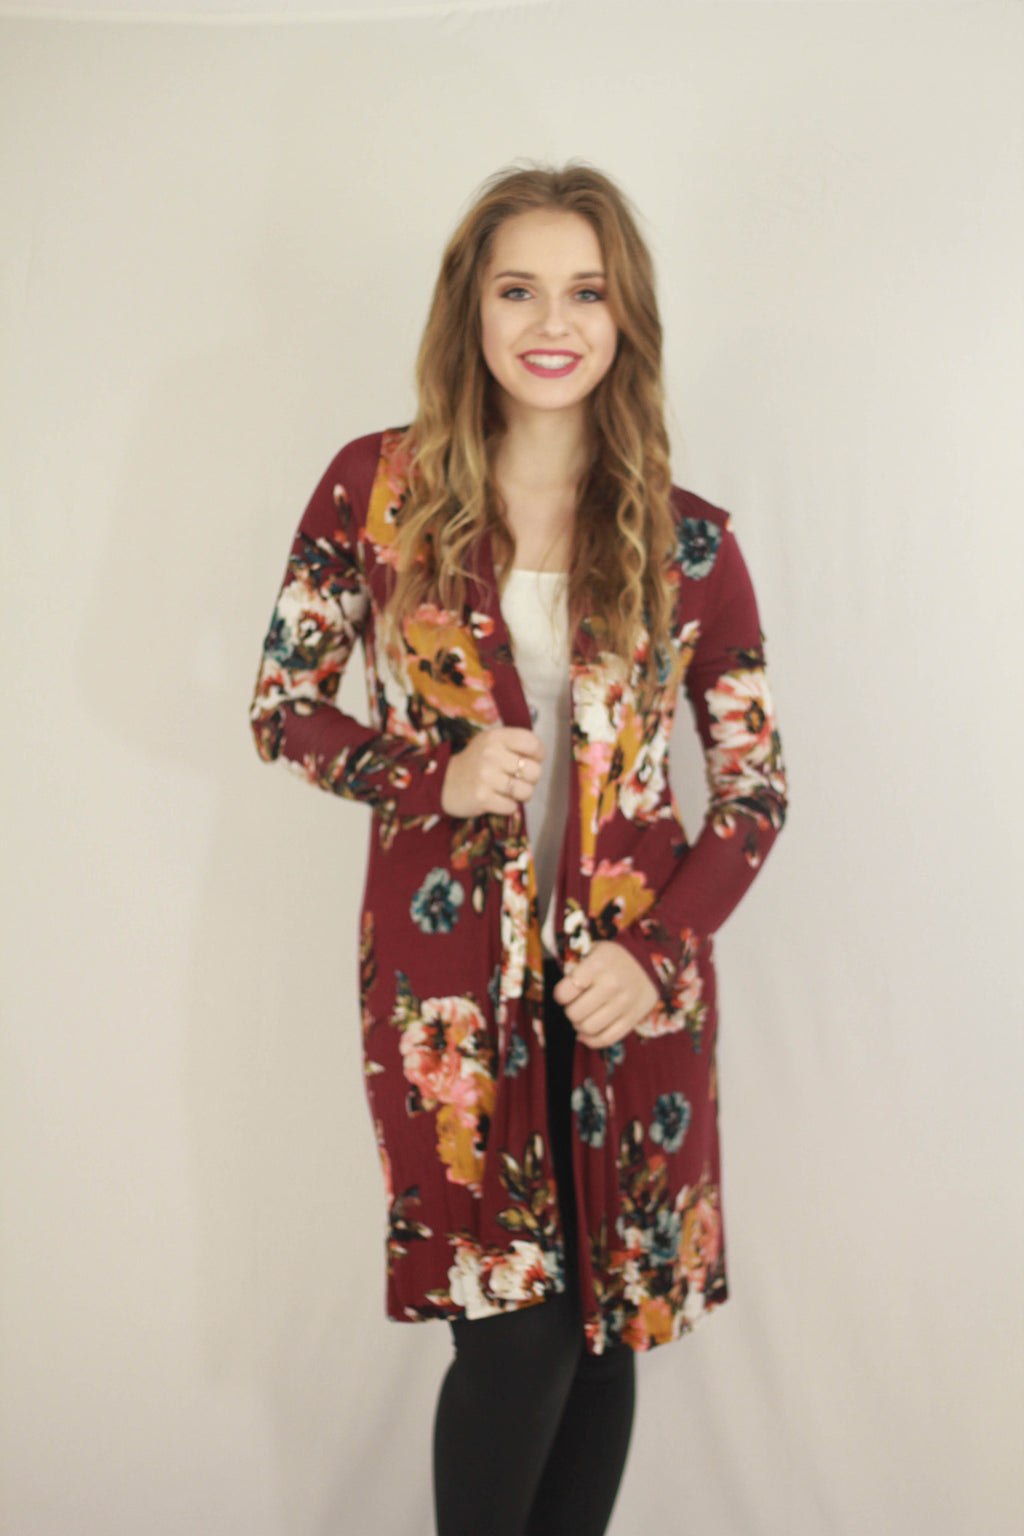 Floral Elbow Patch Cardigan